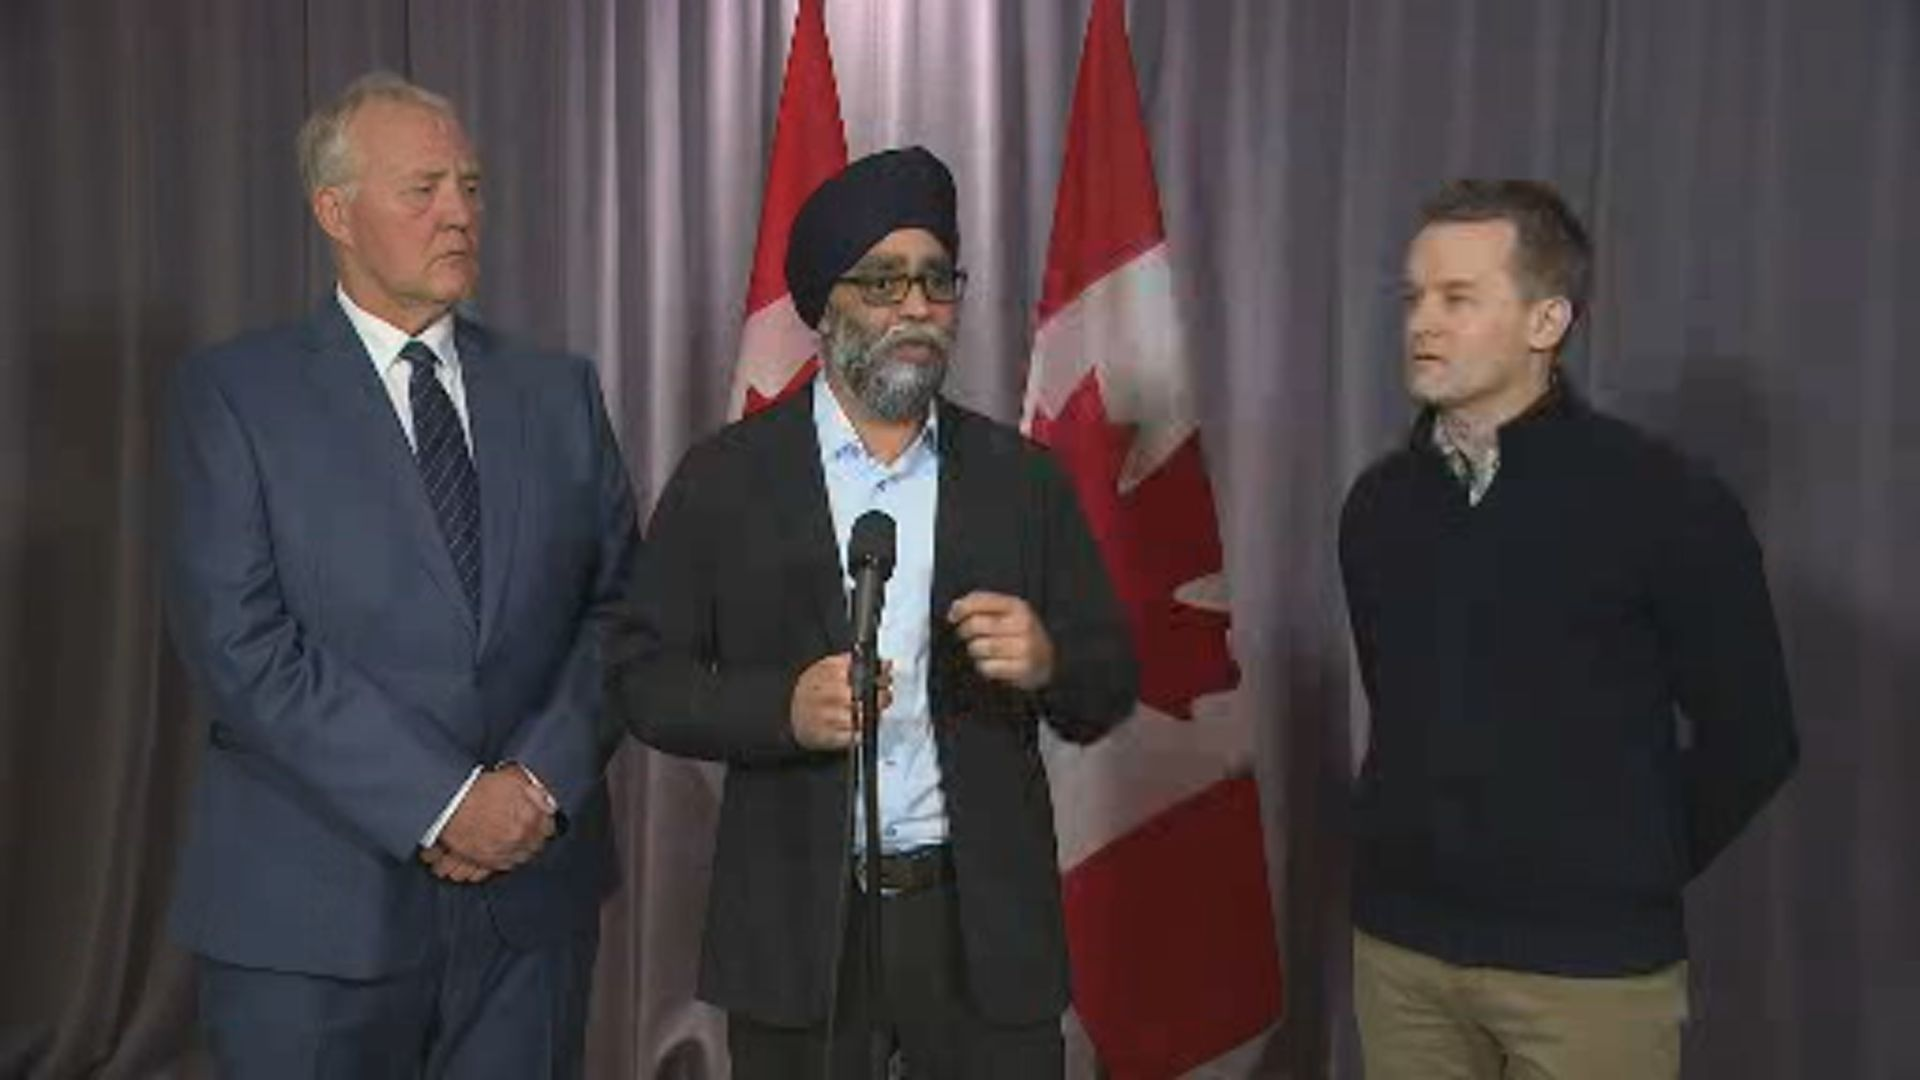 Sajjan say Ottawa, military will work with Newfoundland to determine where assistance is needed